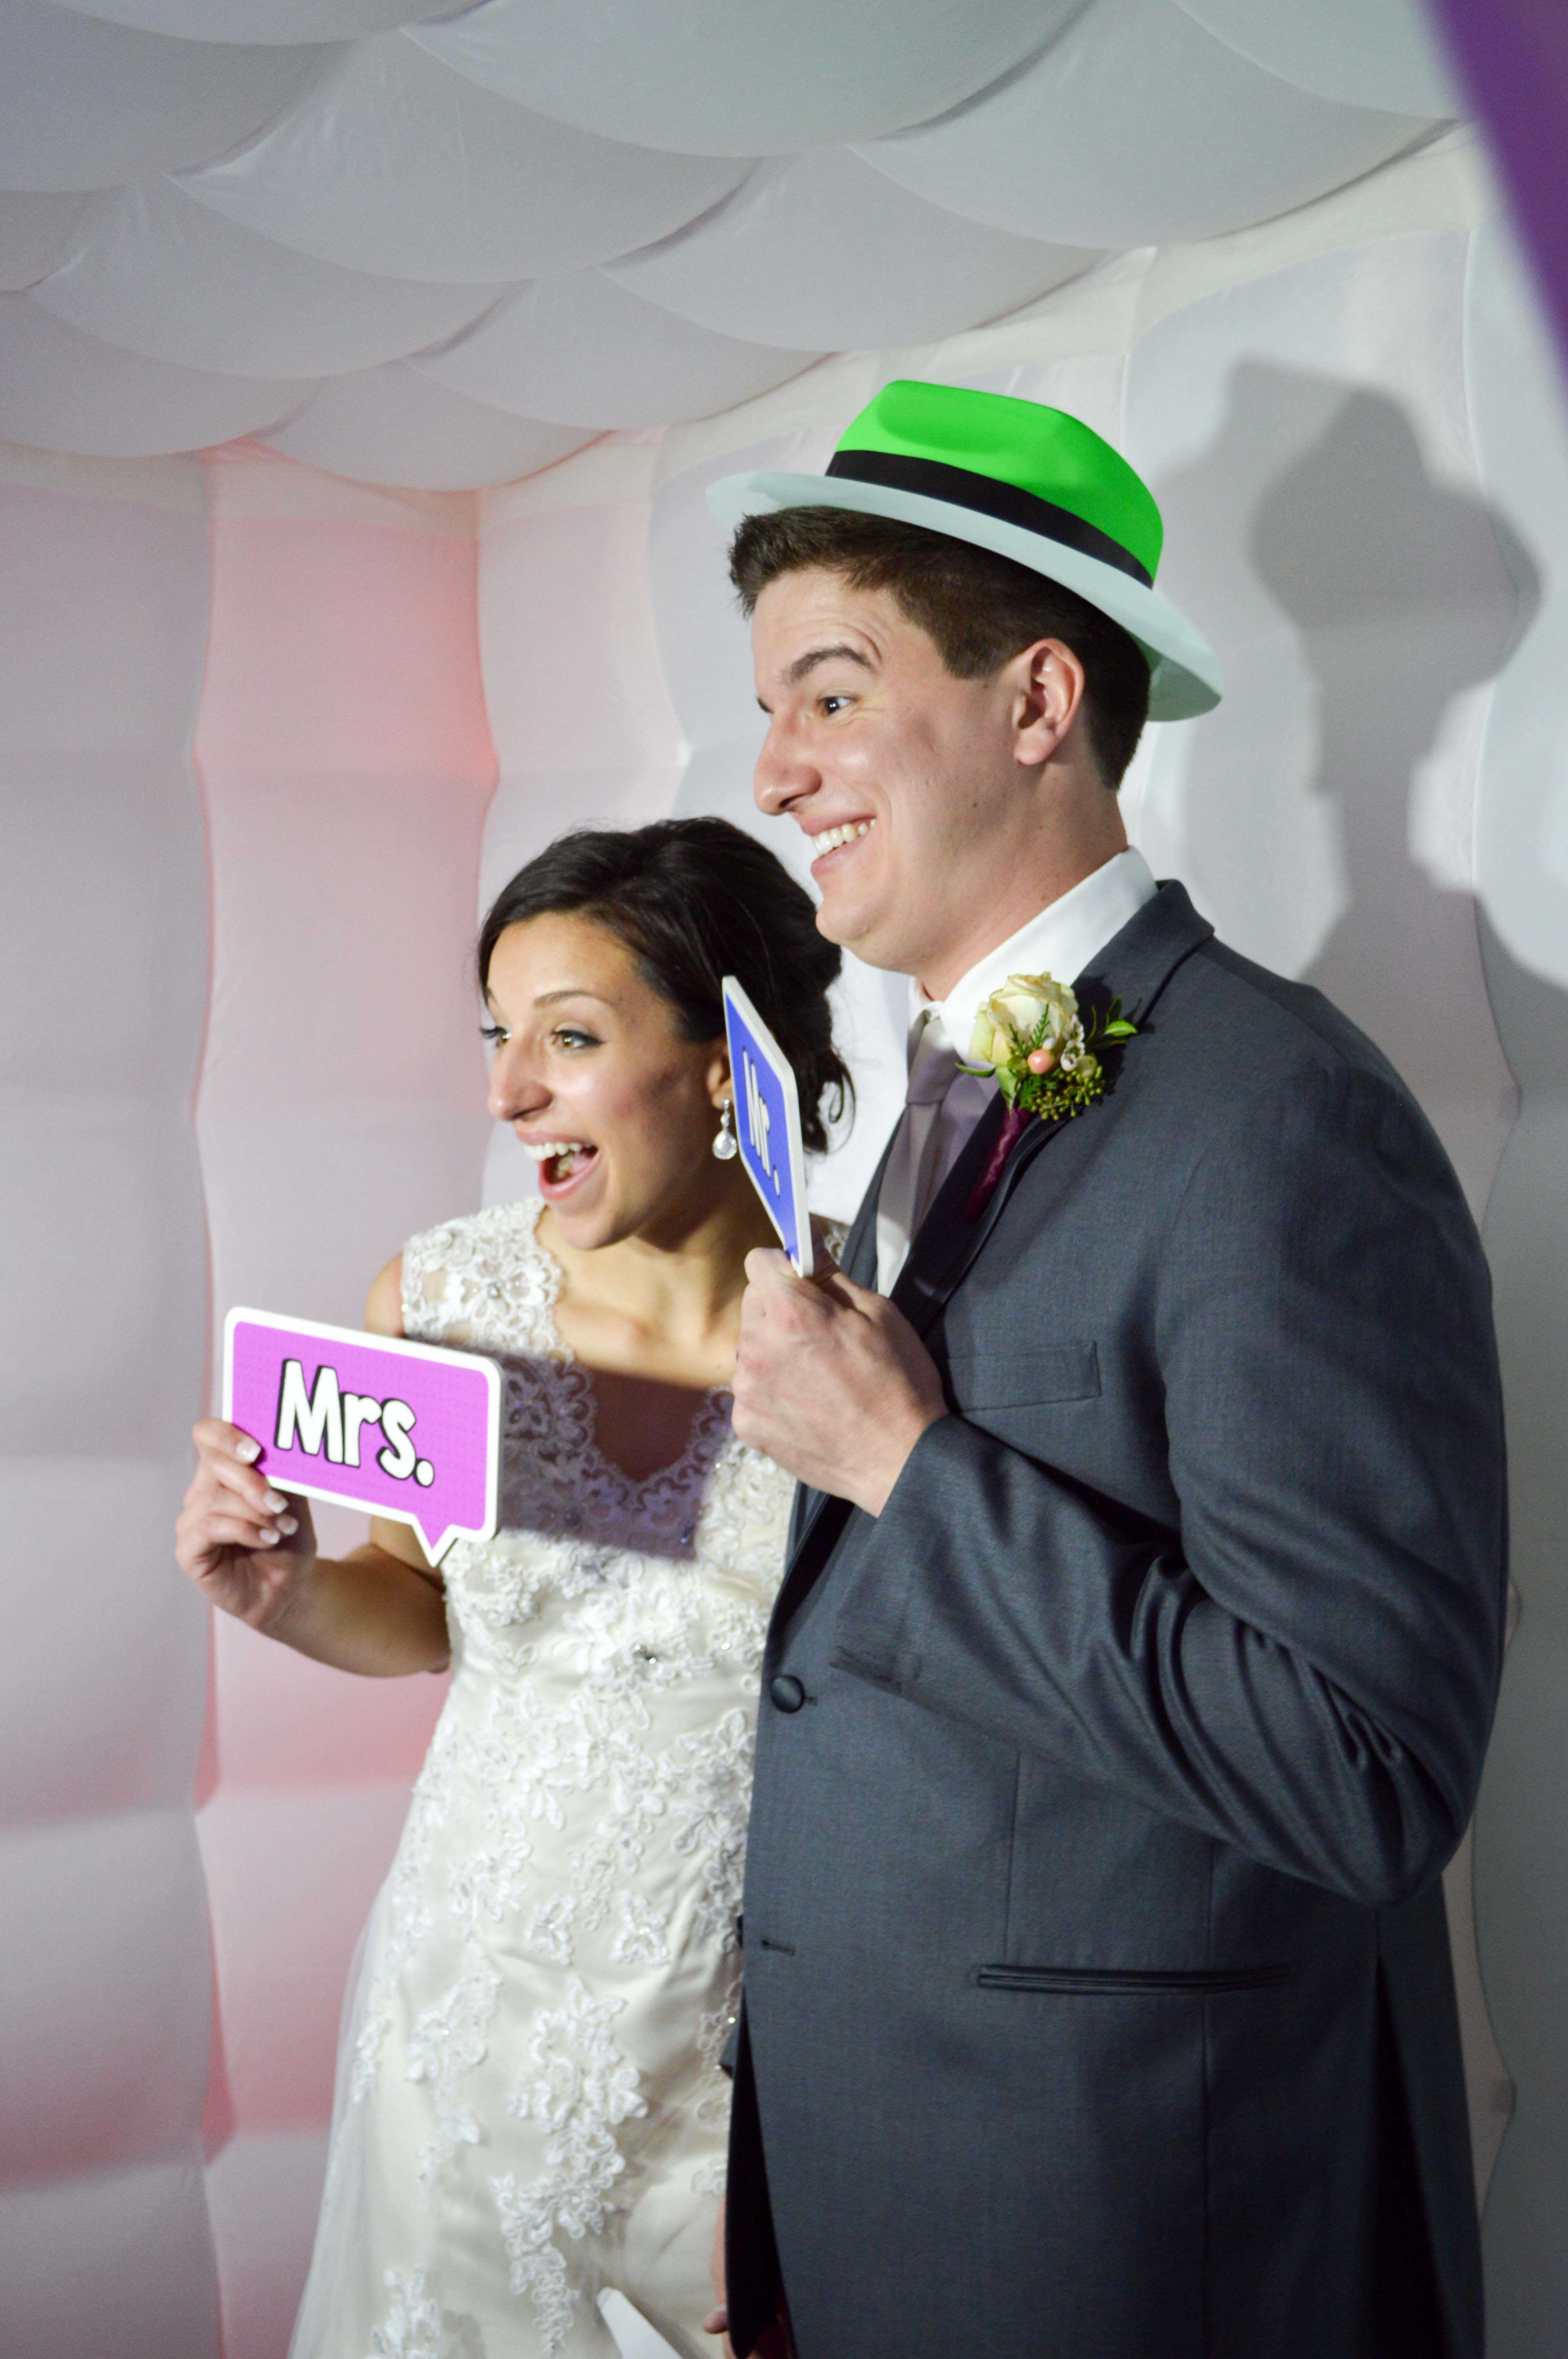 Bride and Groom Capture the moment in the Photo Booth